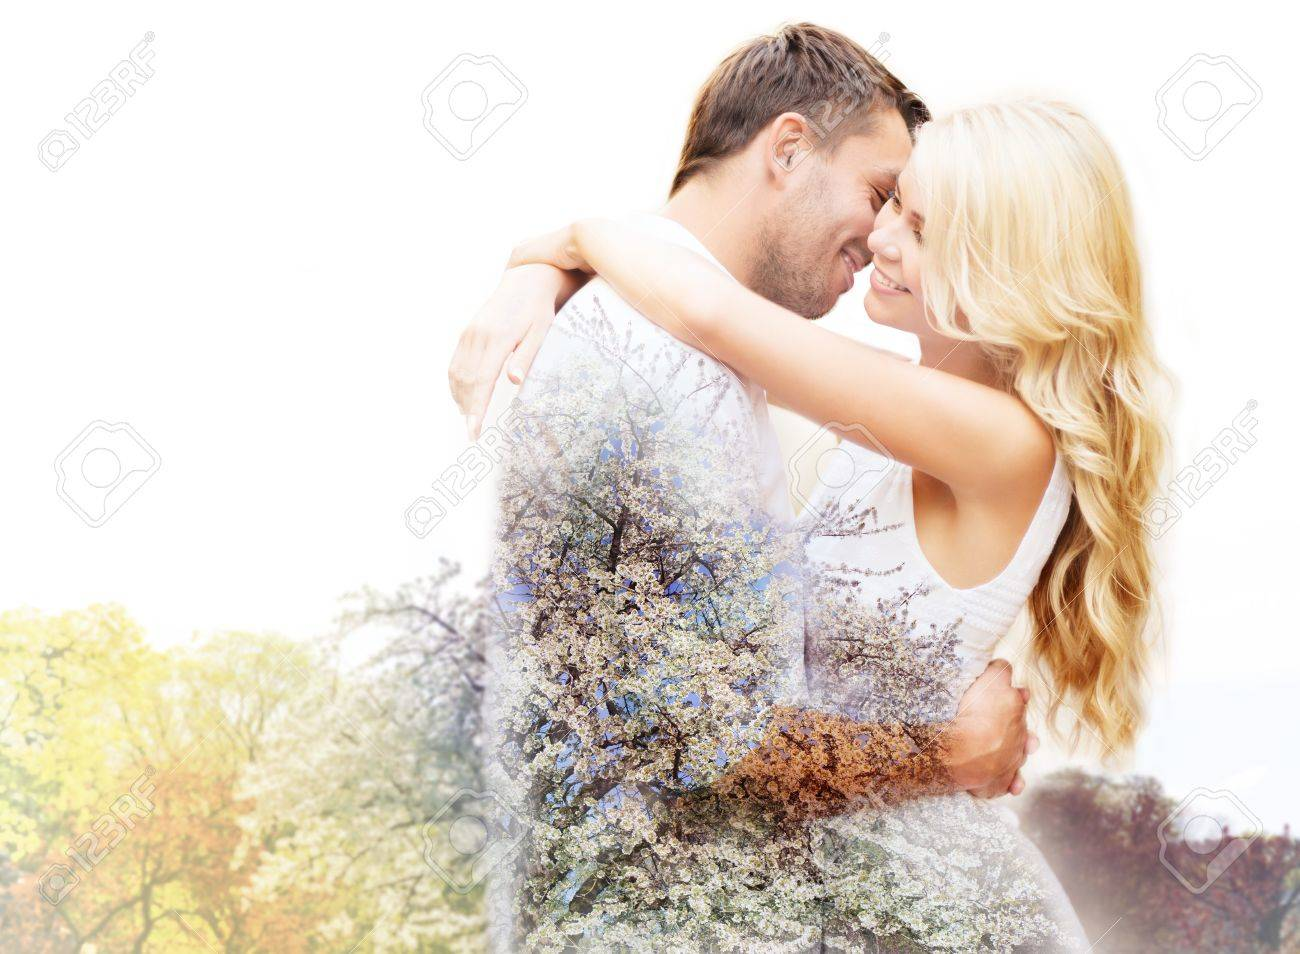 spring, love, romance, double exposure and dating concept - happy couple hugging over cherry blossom background Stock Photo - 47366759